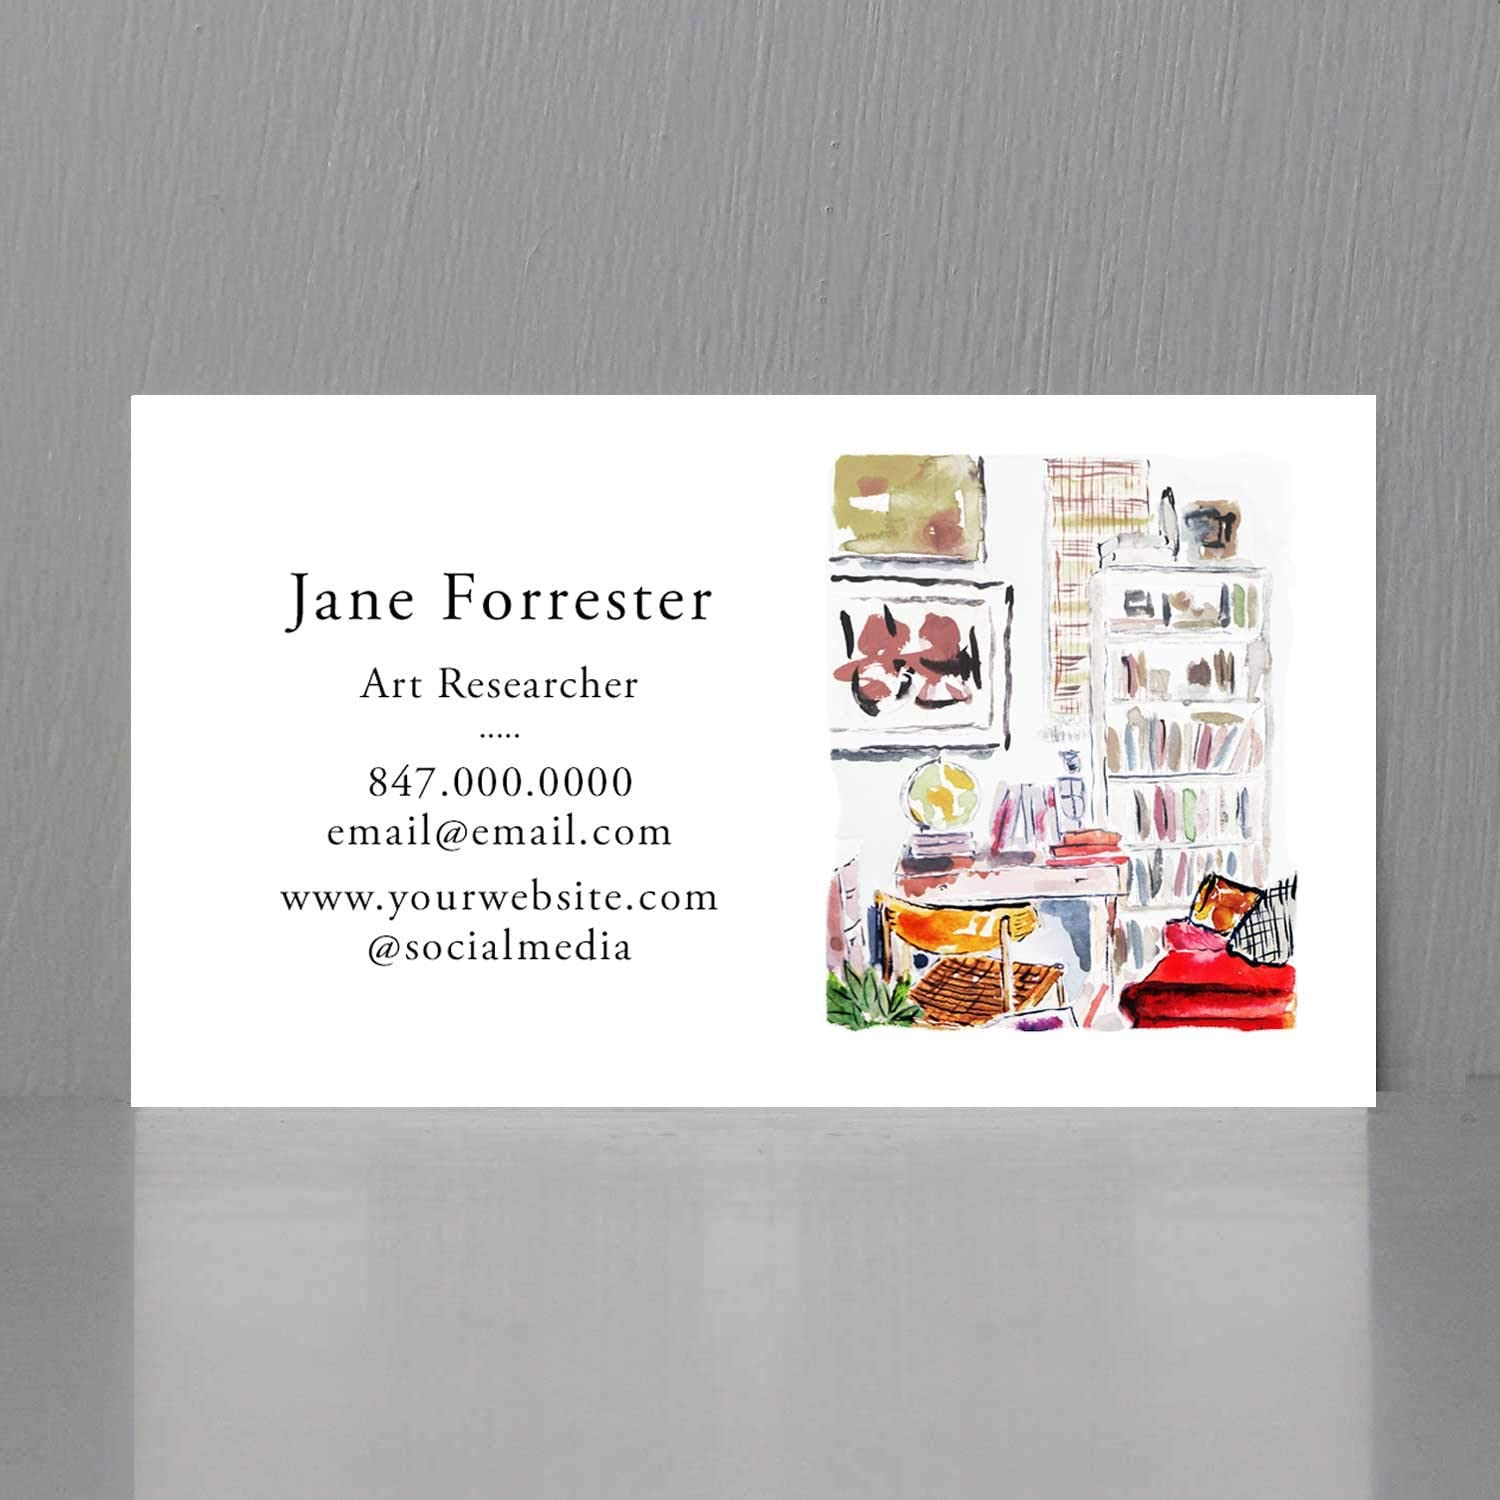 Amazon Com Business Cards For Interior Designers Home Staging Set Designer Writer And More Printing On 110lb Heavy Textured Cover Stock These Quality Cards Make An Impressive Impact 50 Office Products